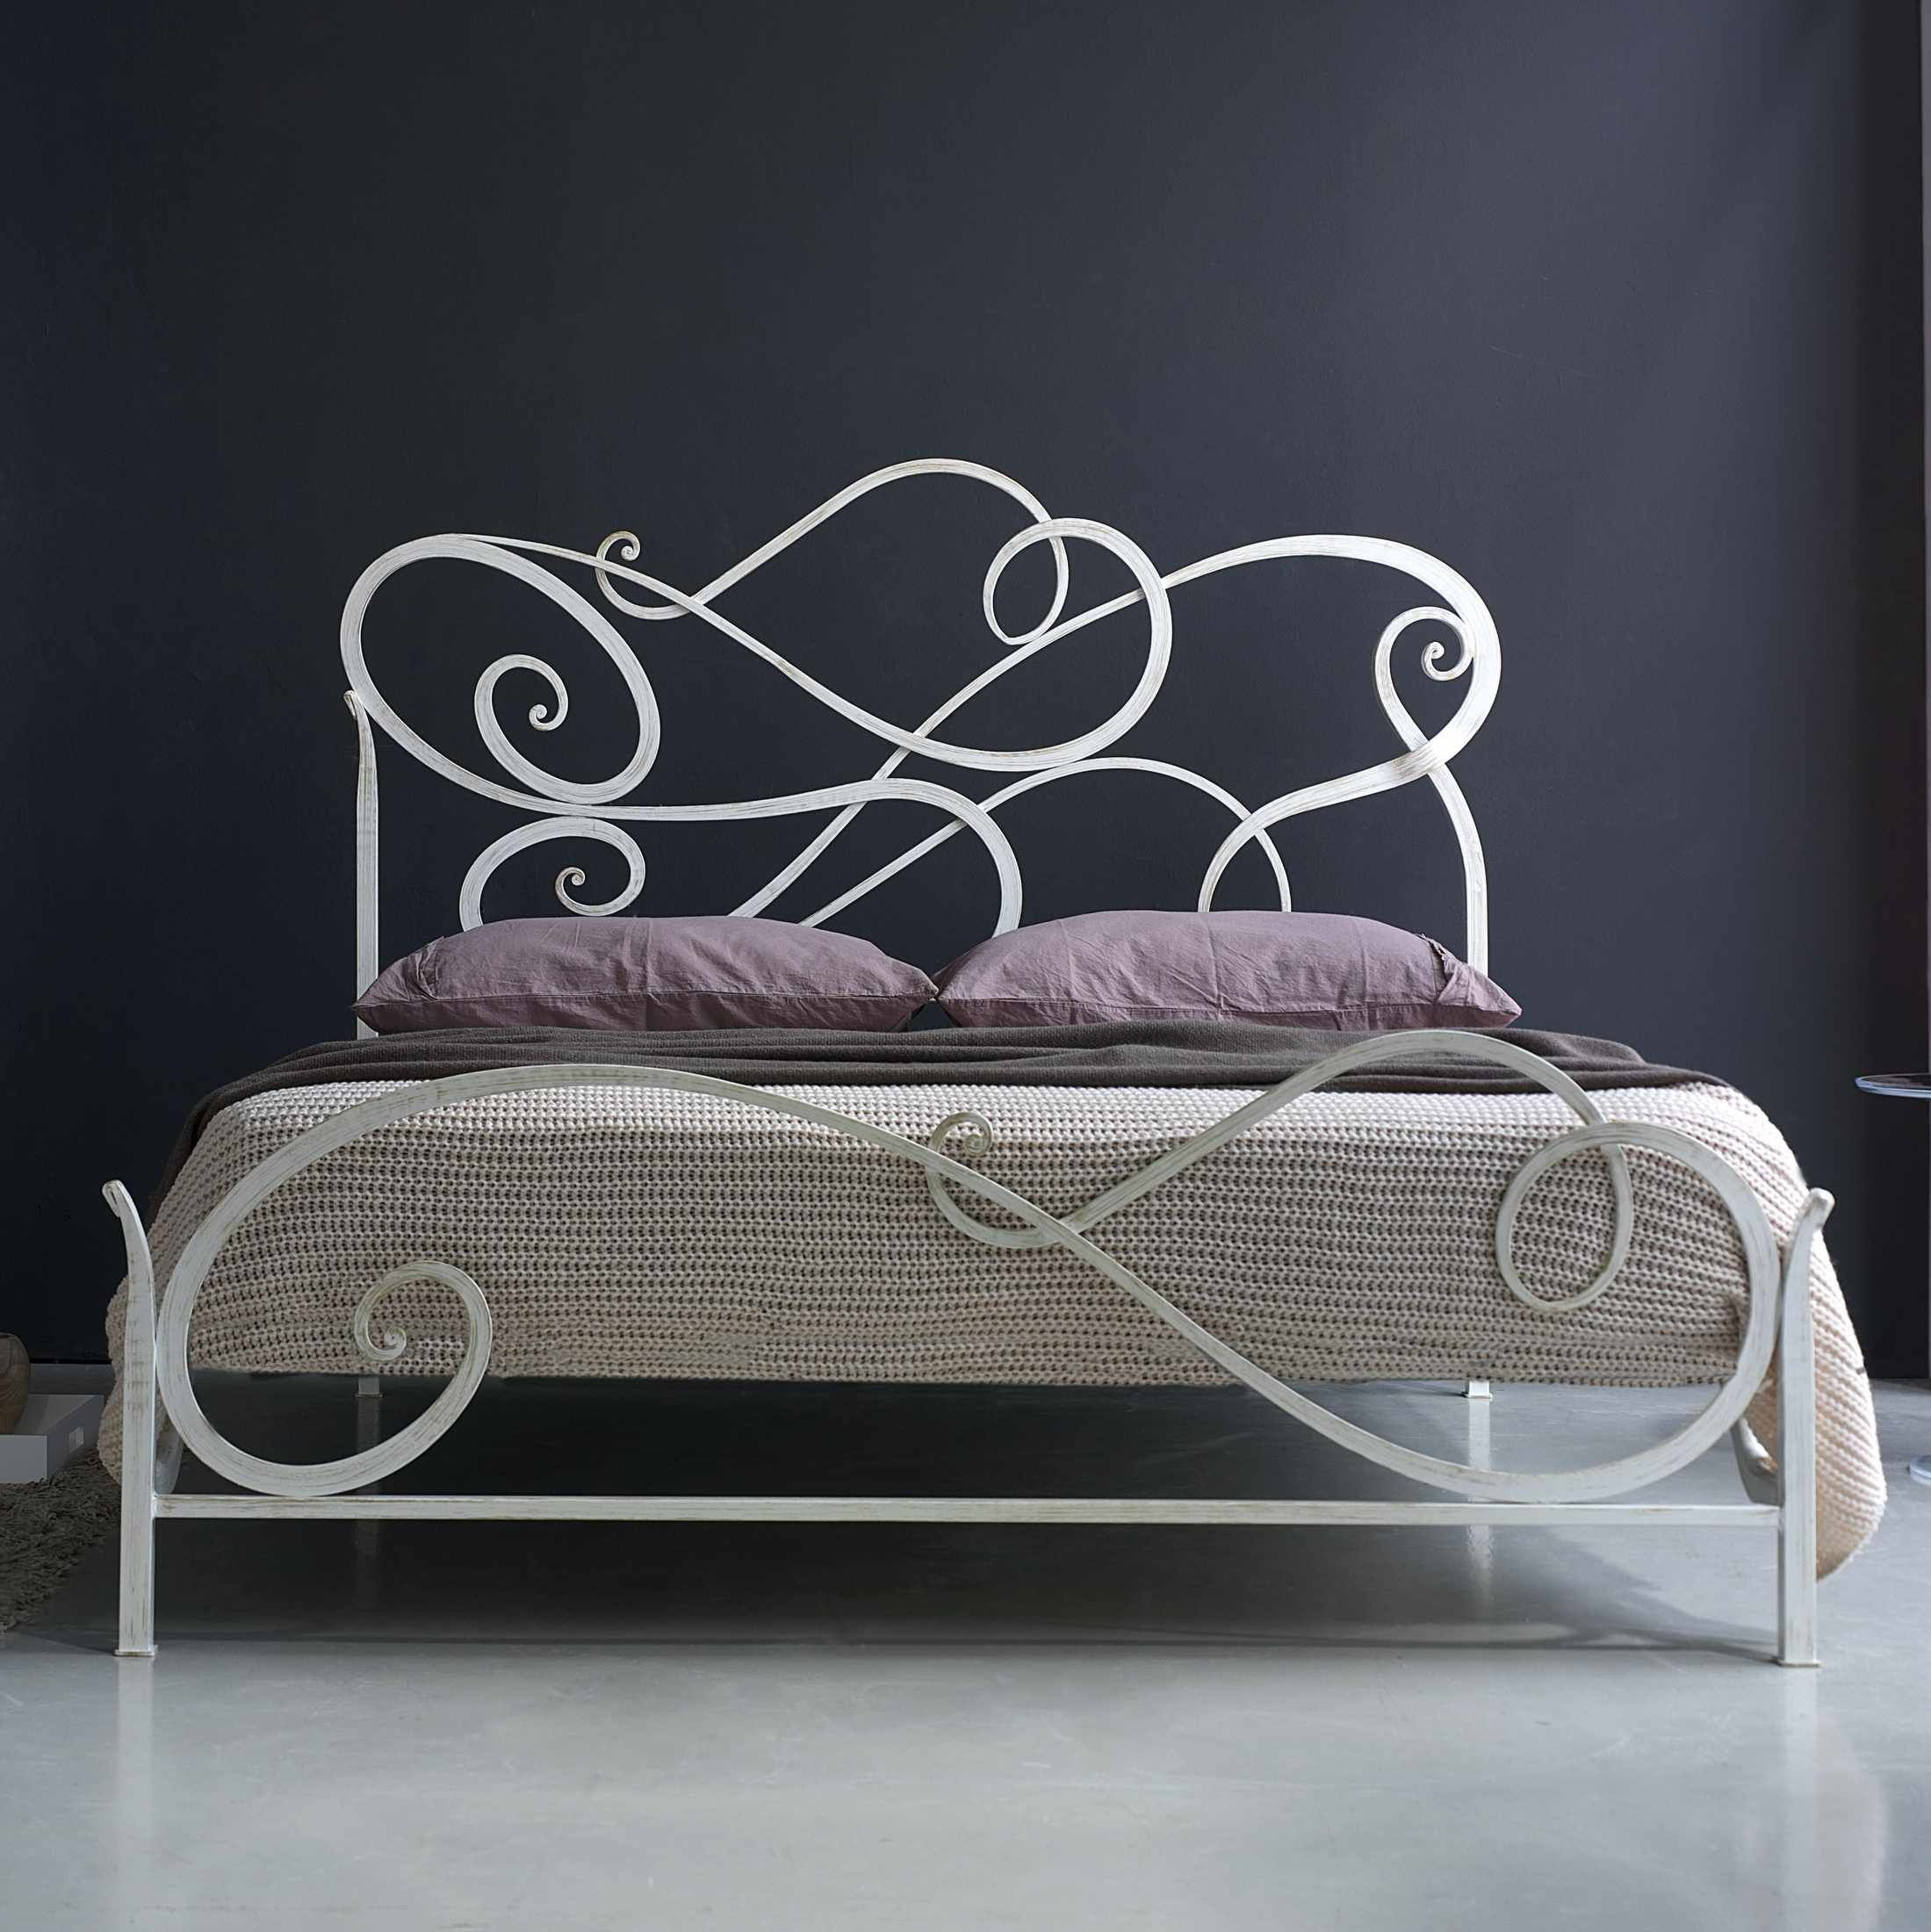 High Quality Hand Made Wrought Iron Beds In Italy My Italian